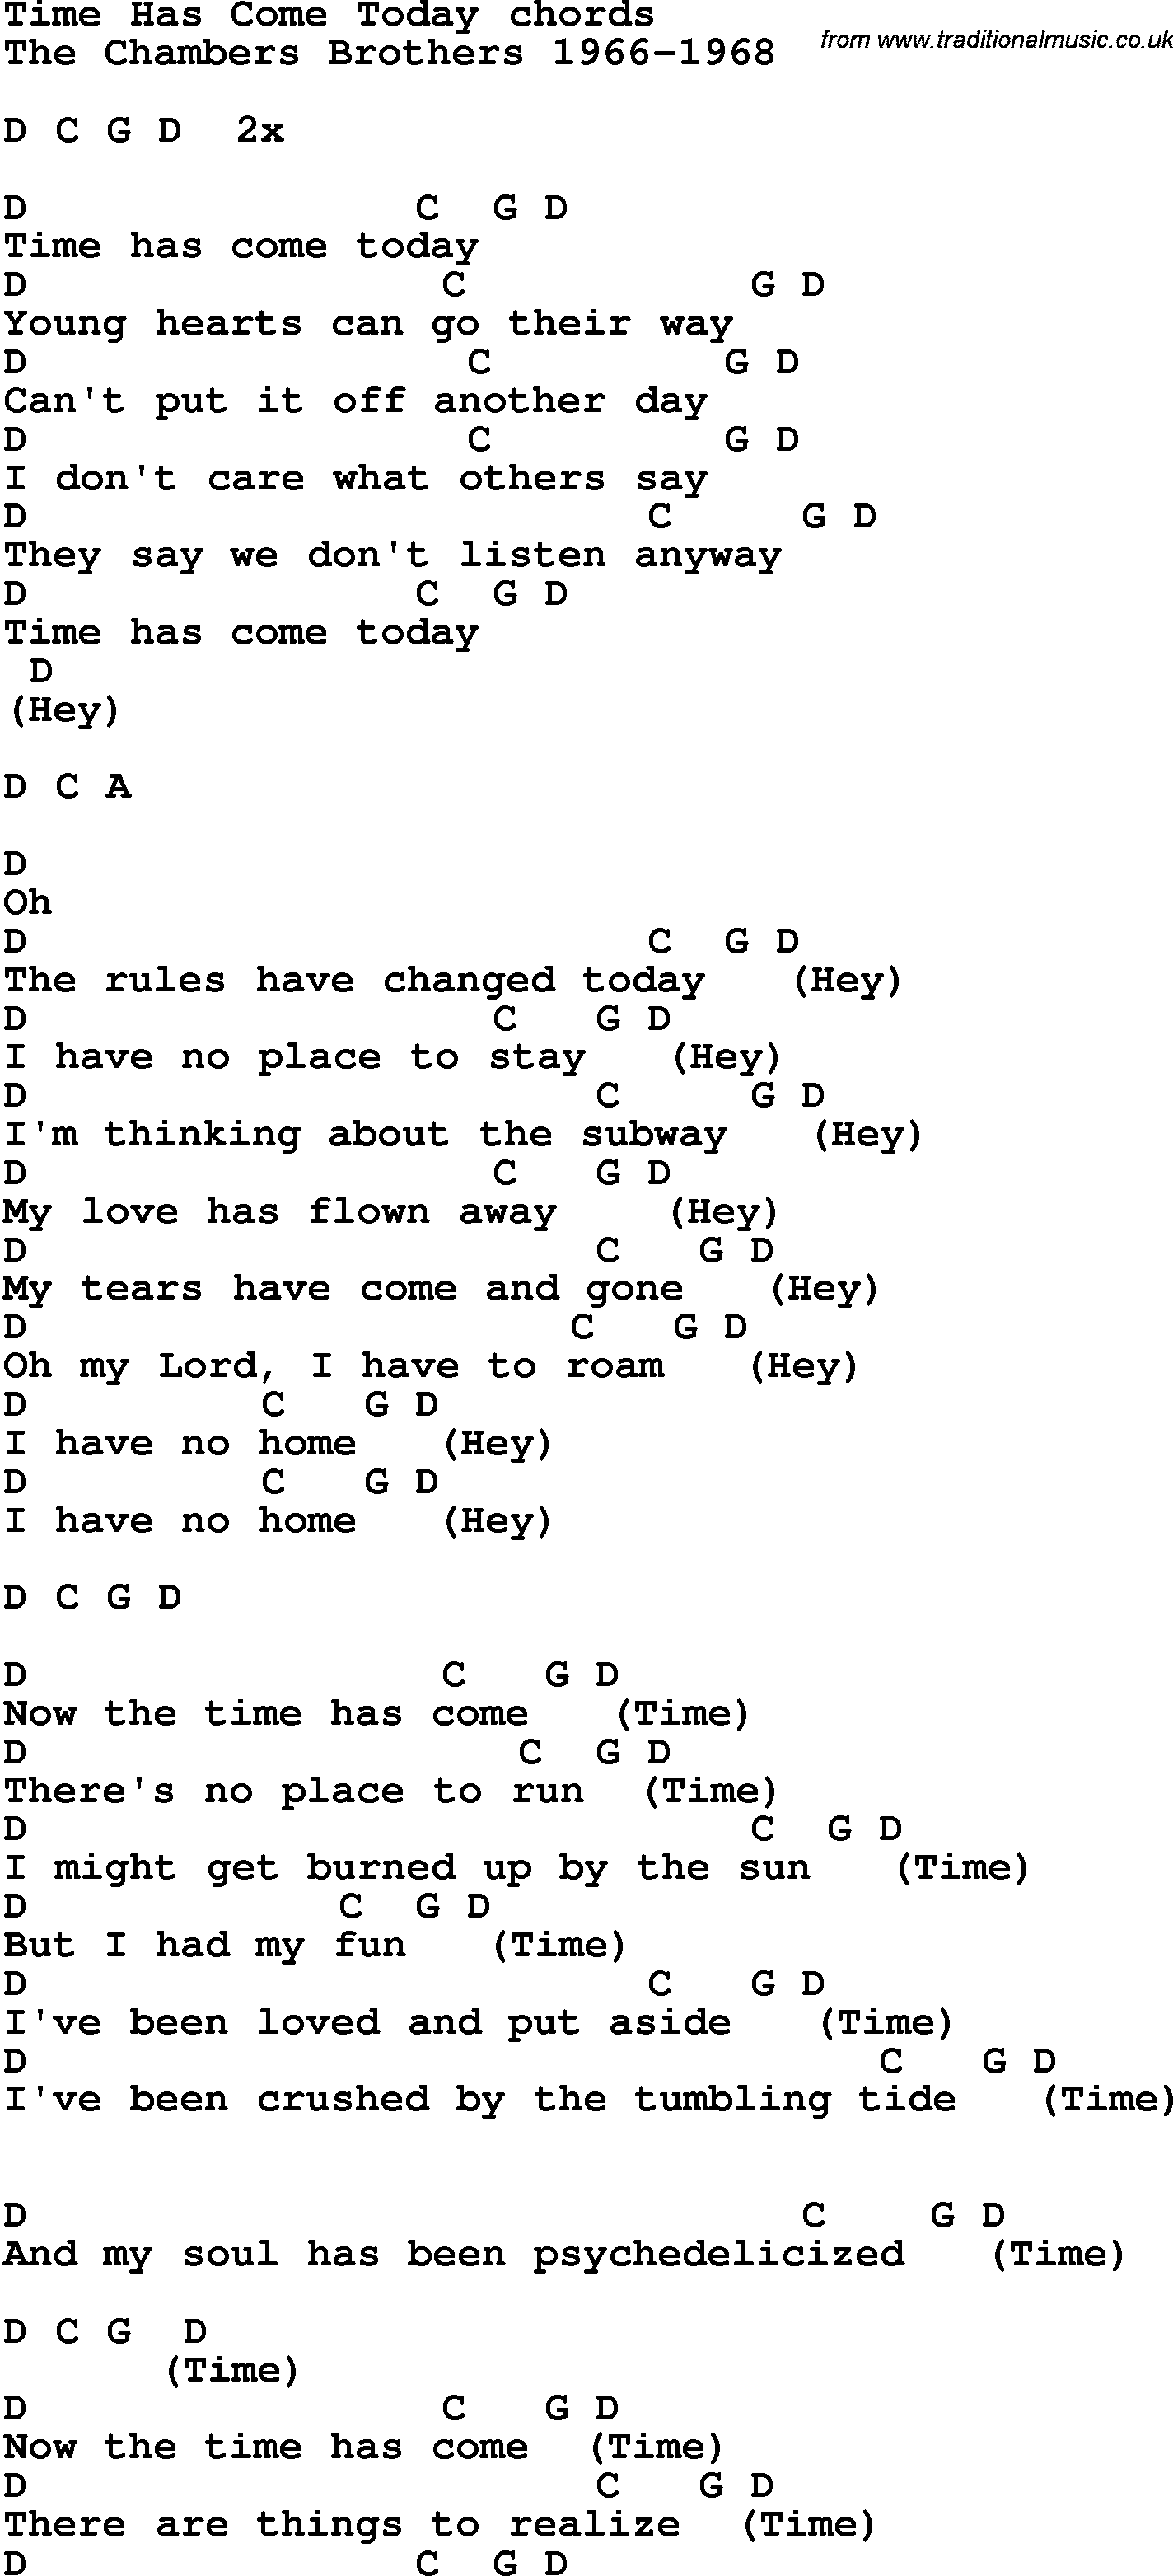 Song Lyrics With Guitar Chords For Time Has Come Today